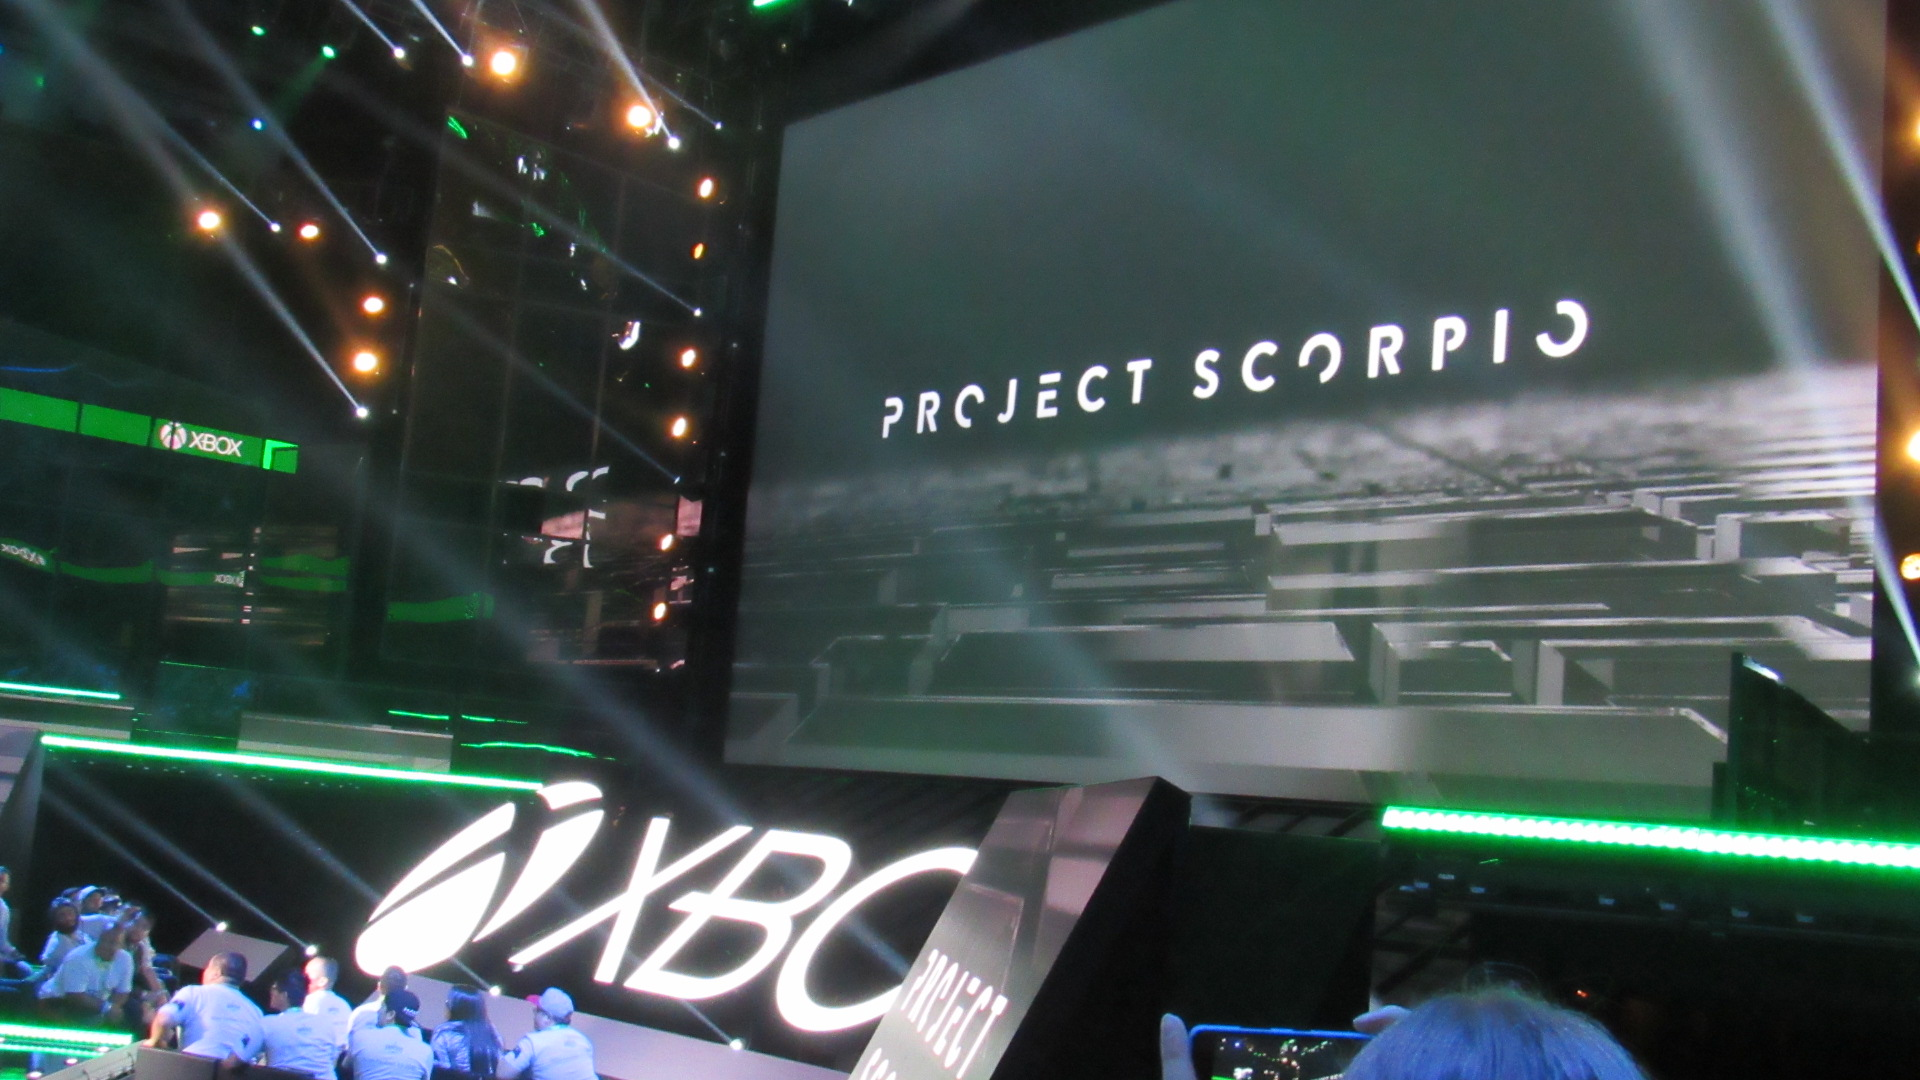 Project Scorpio Teased at E3